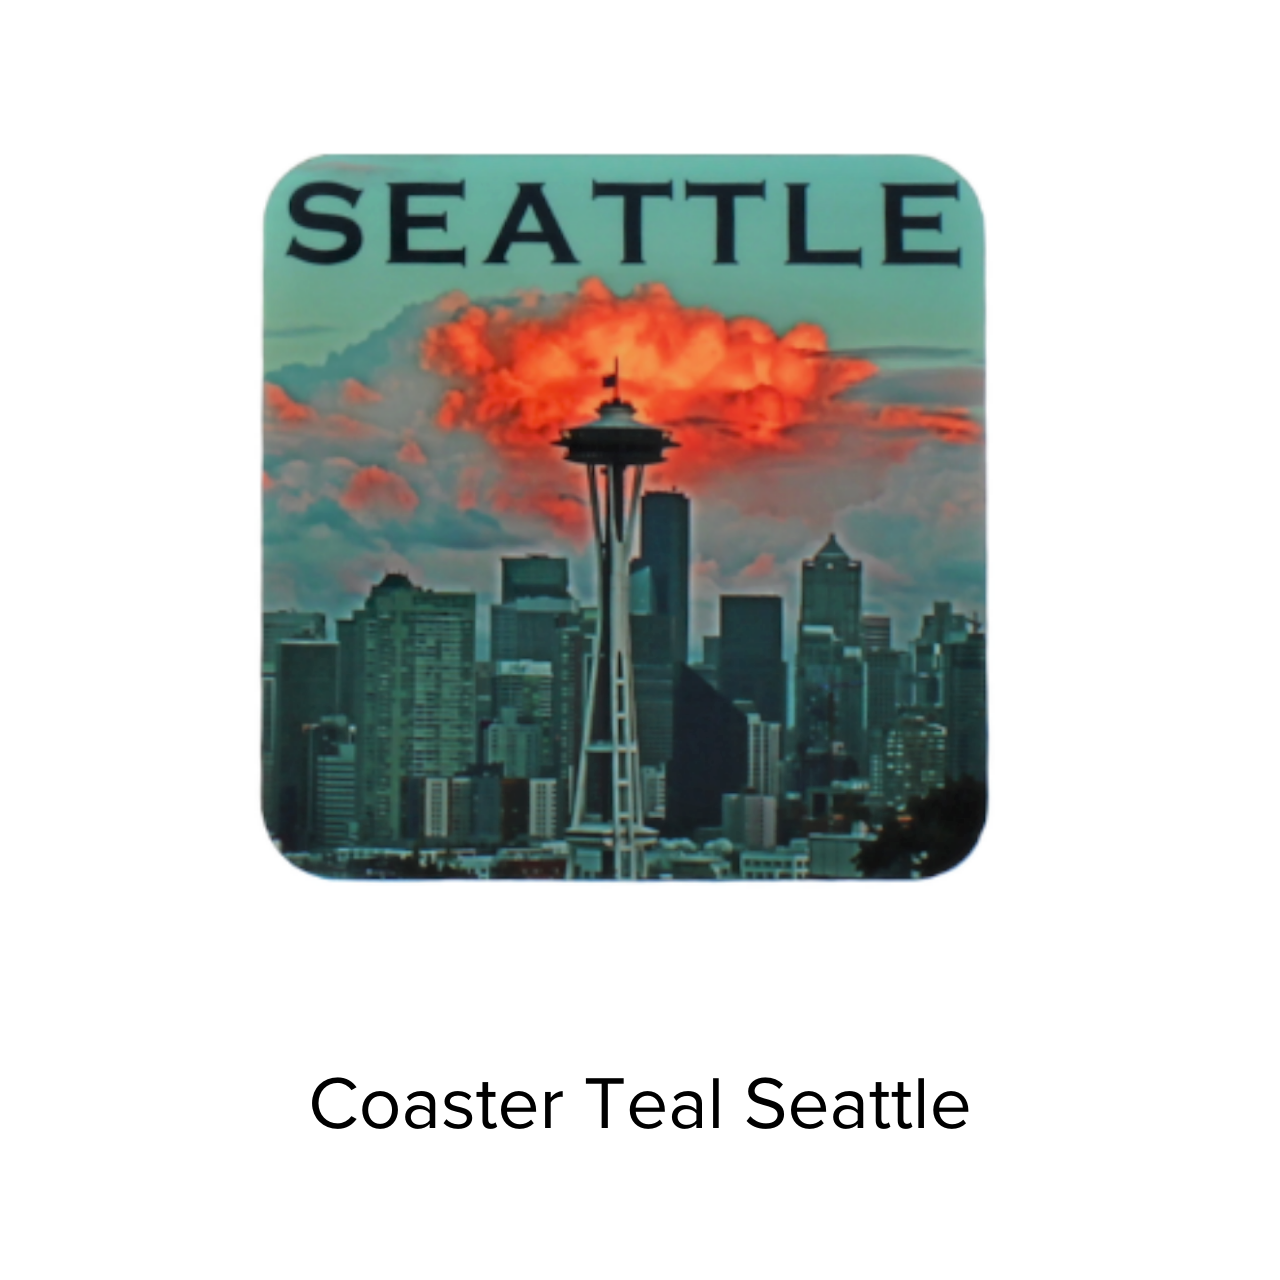 Royal Phoenix Coaster Teal Seattle